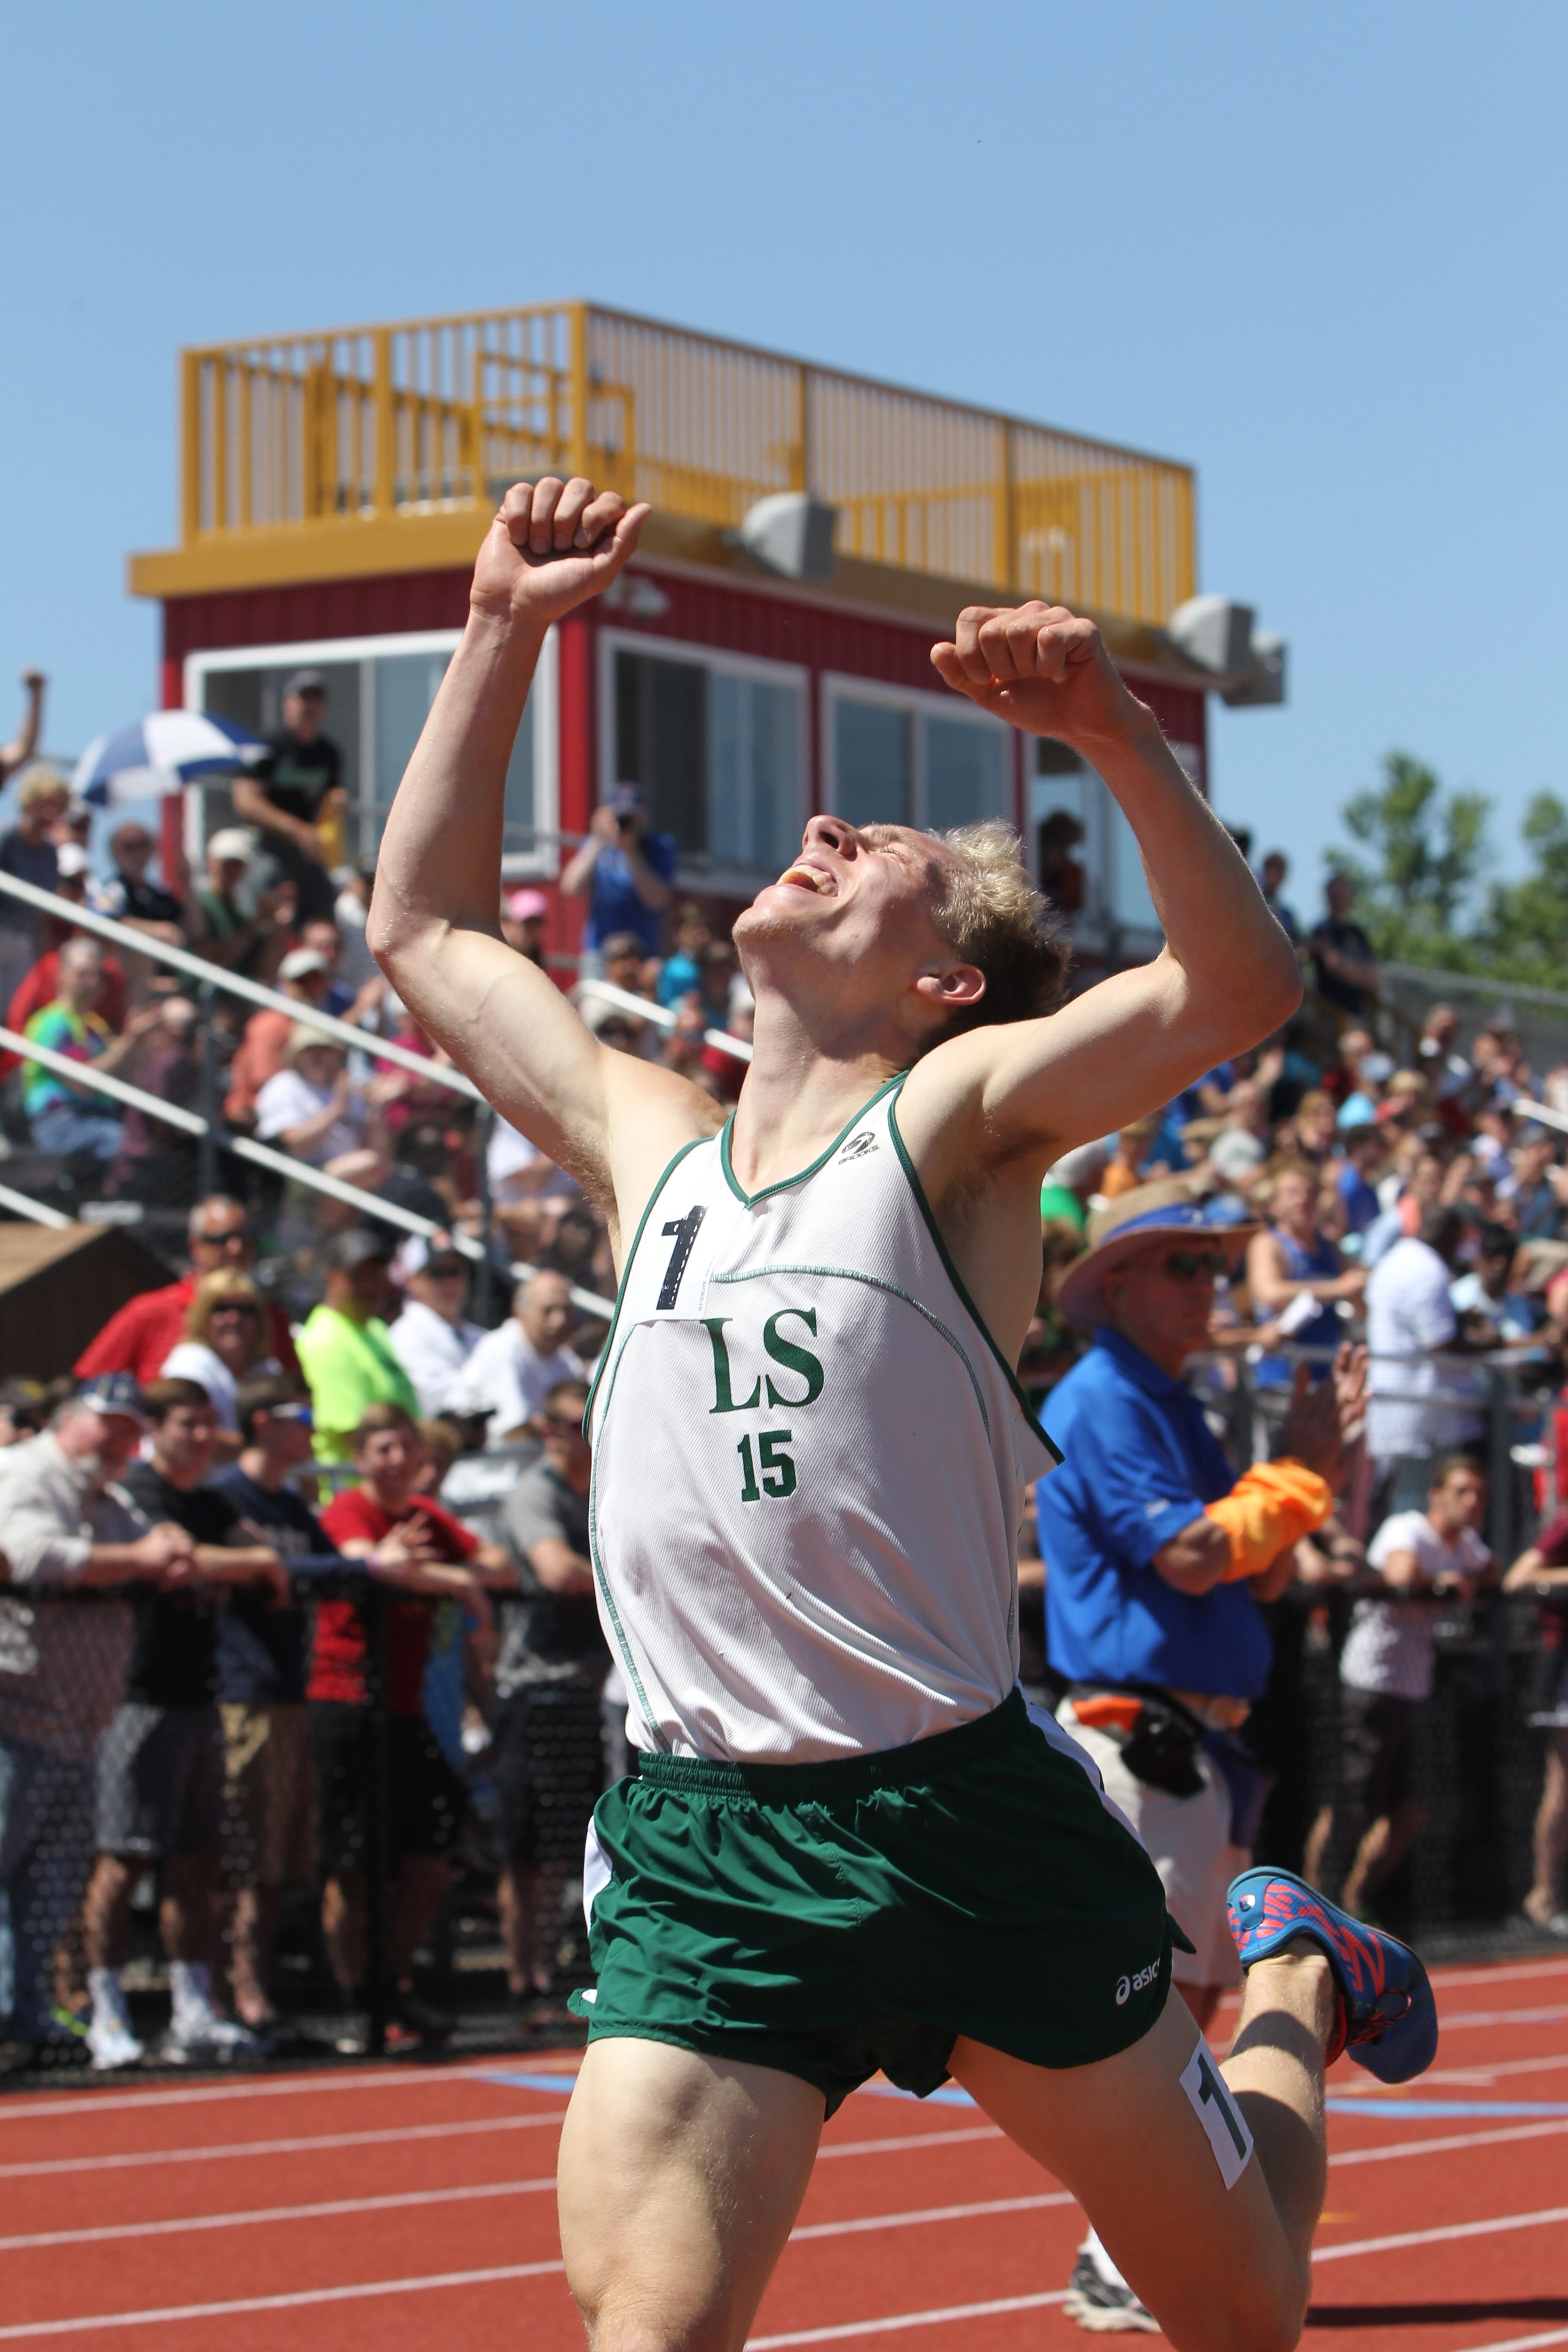 T.J. Hornberger finishes the 1,600 in 4:12:77 to break Charlie Kern's record of 4:13:07 that stood for 27 years.